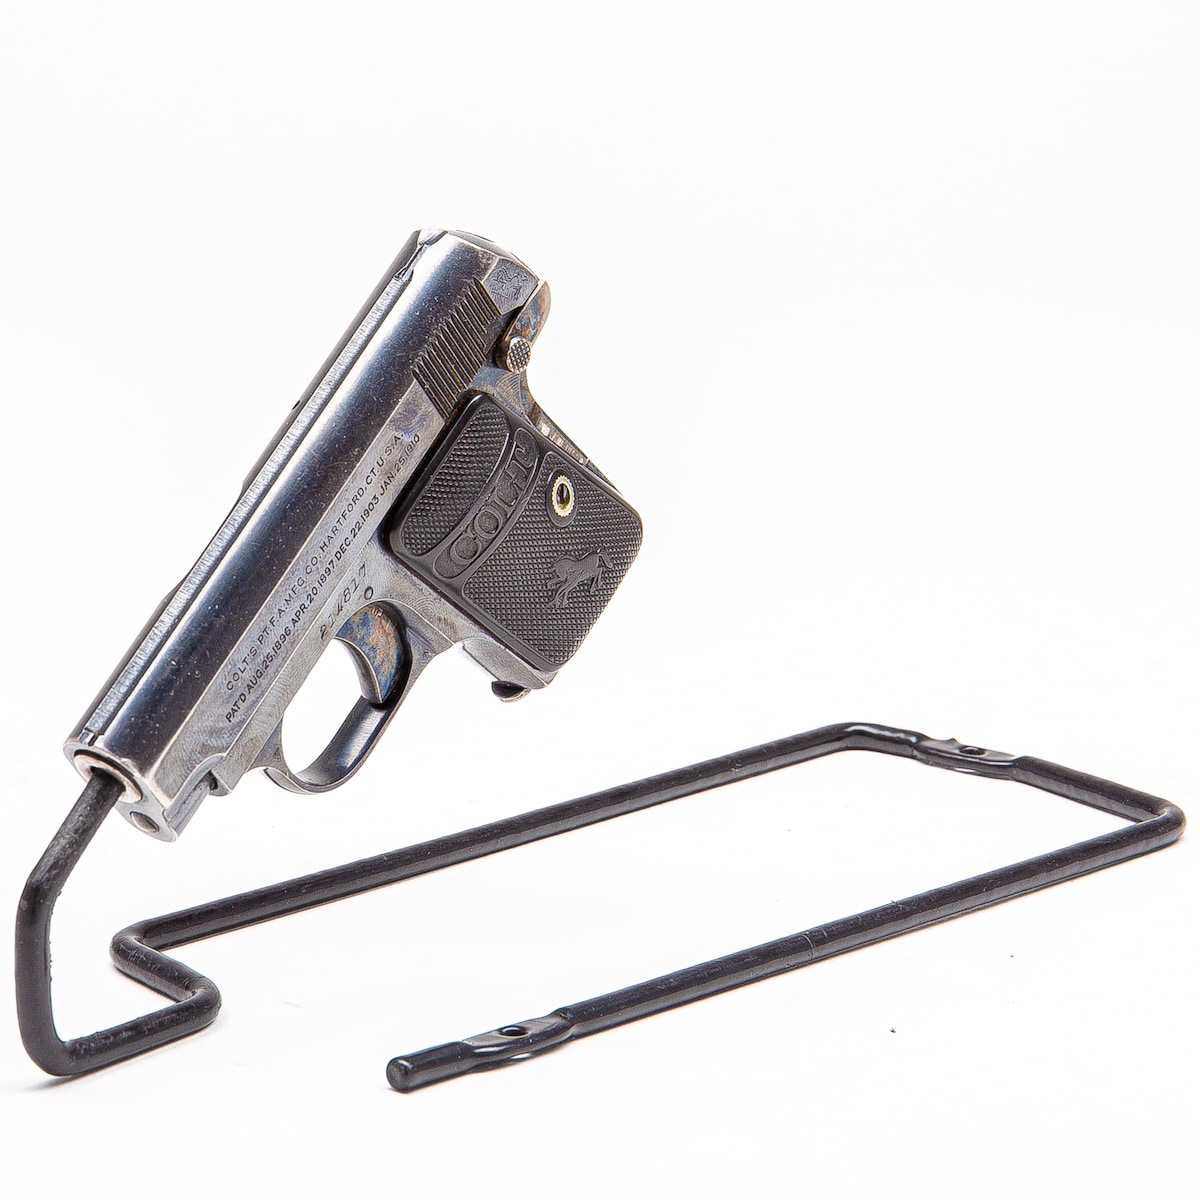 COLT MODEL 1908 VEST POCKET PISTOL